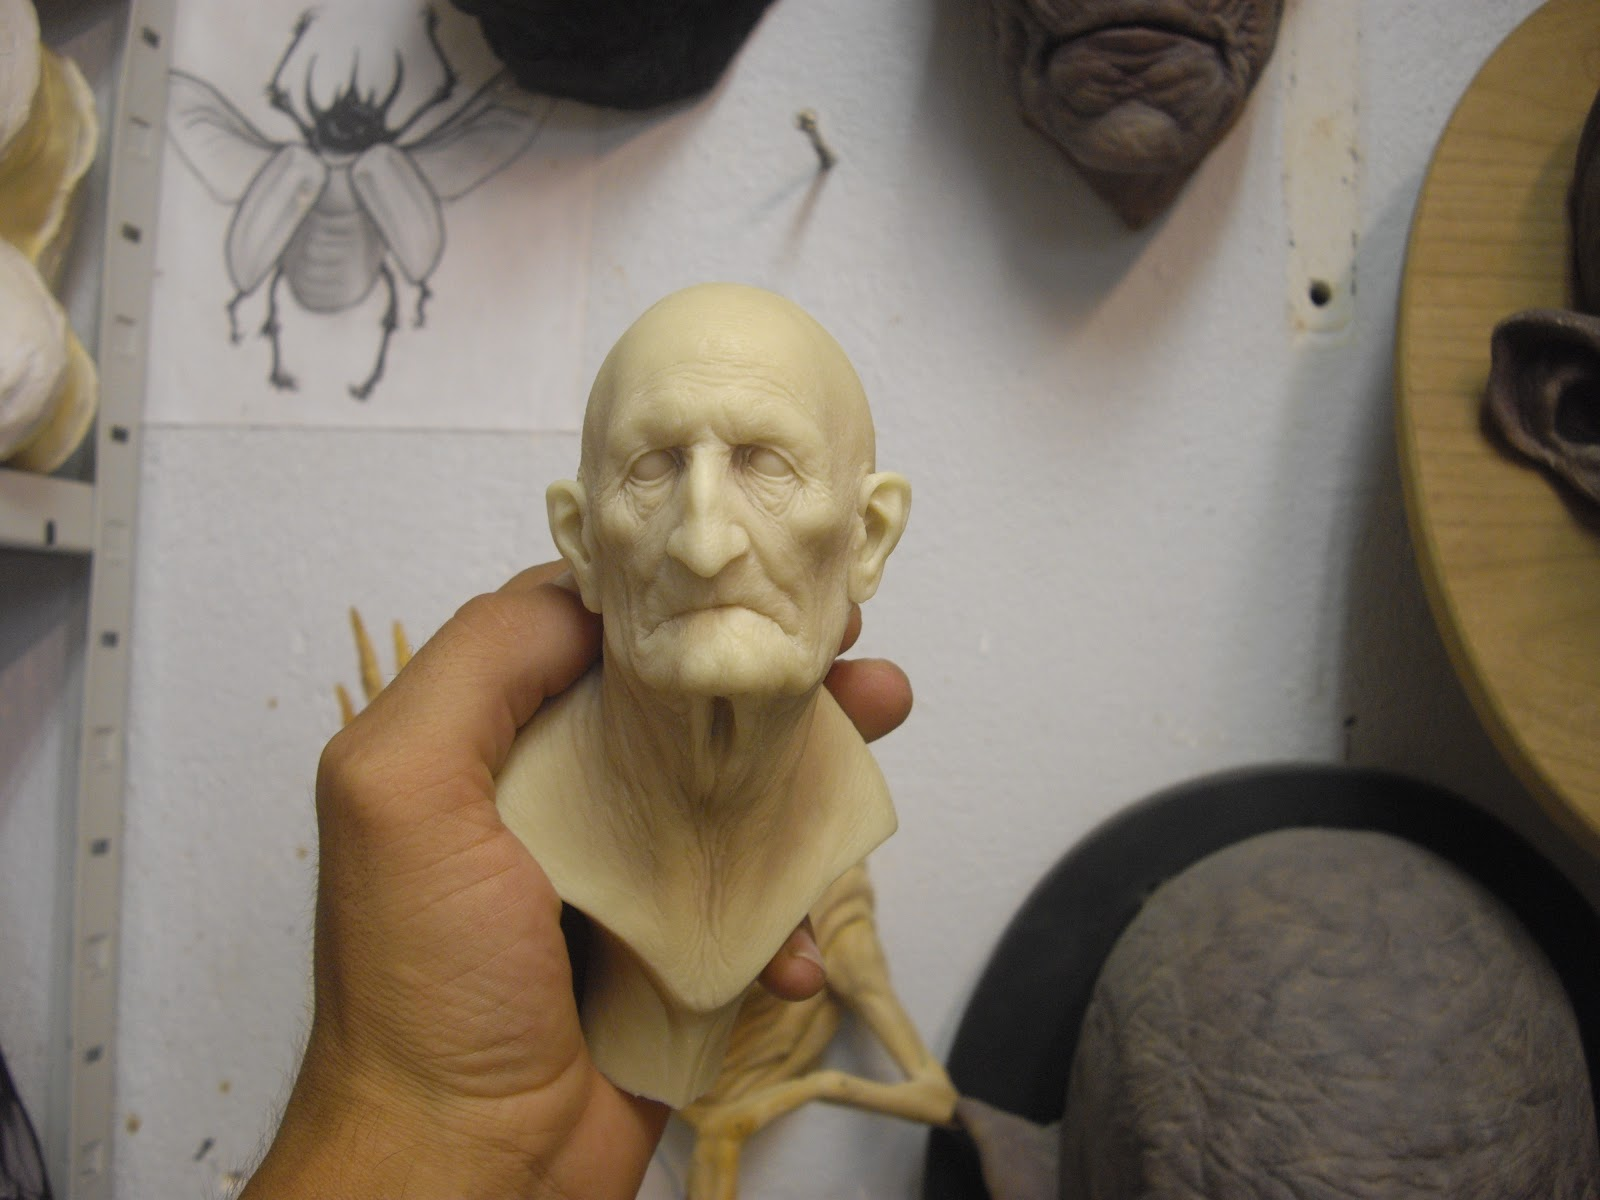 Aris Kolokontes art.: Old man resin cast  for Polyester Resin Sculpture  183qdu